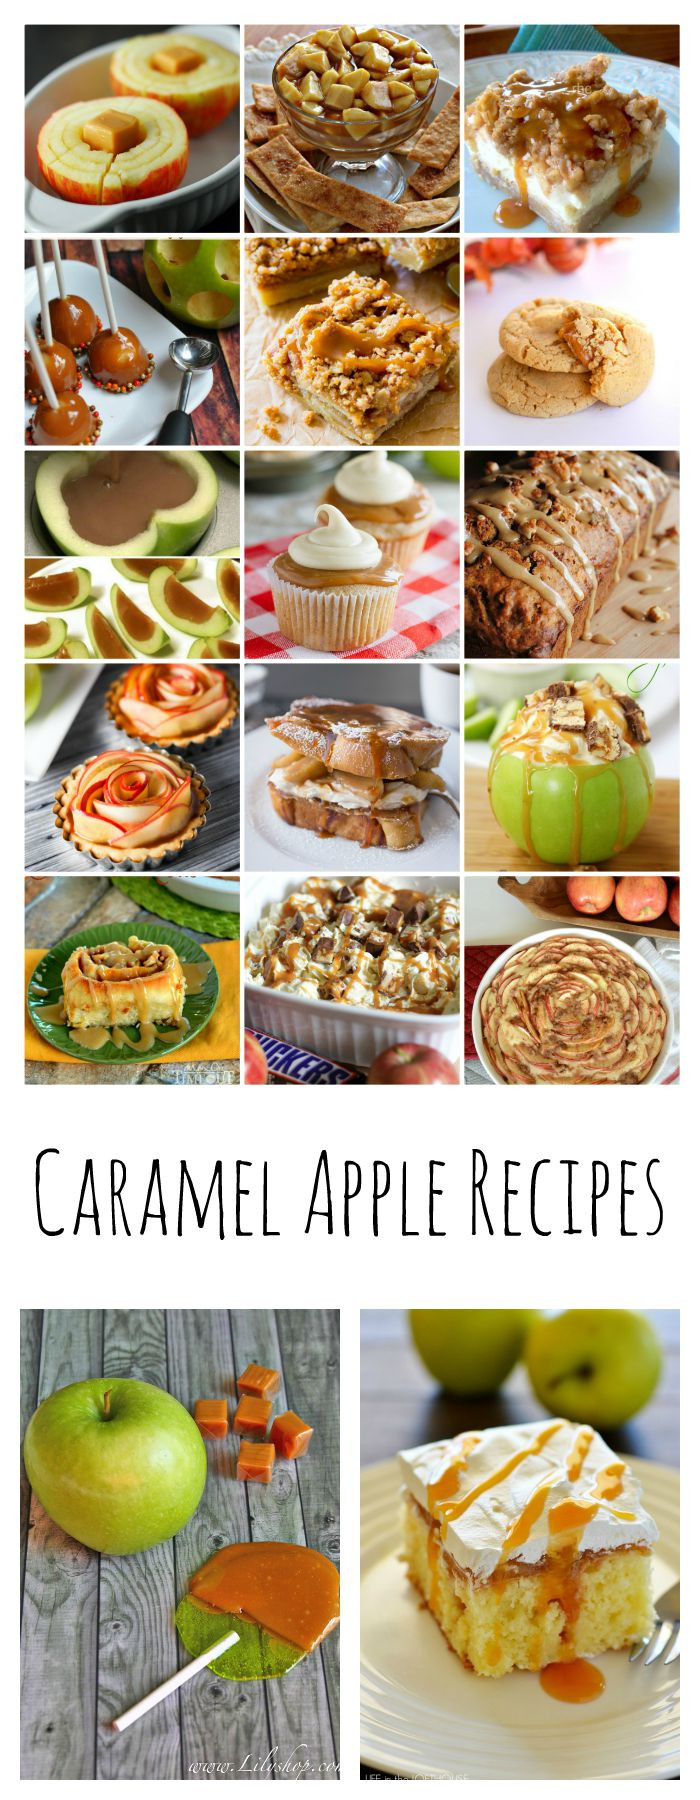 Fall Apple Recipes  Caramel Apple Recipes The Idea Room